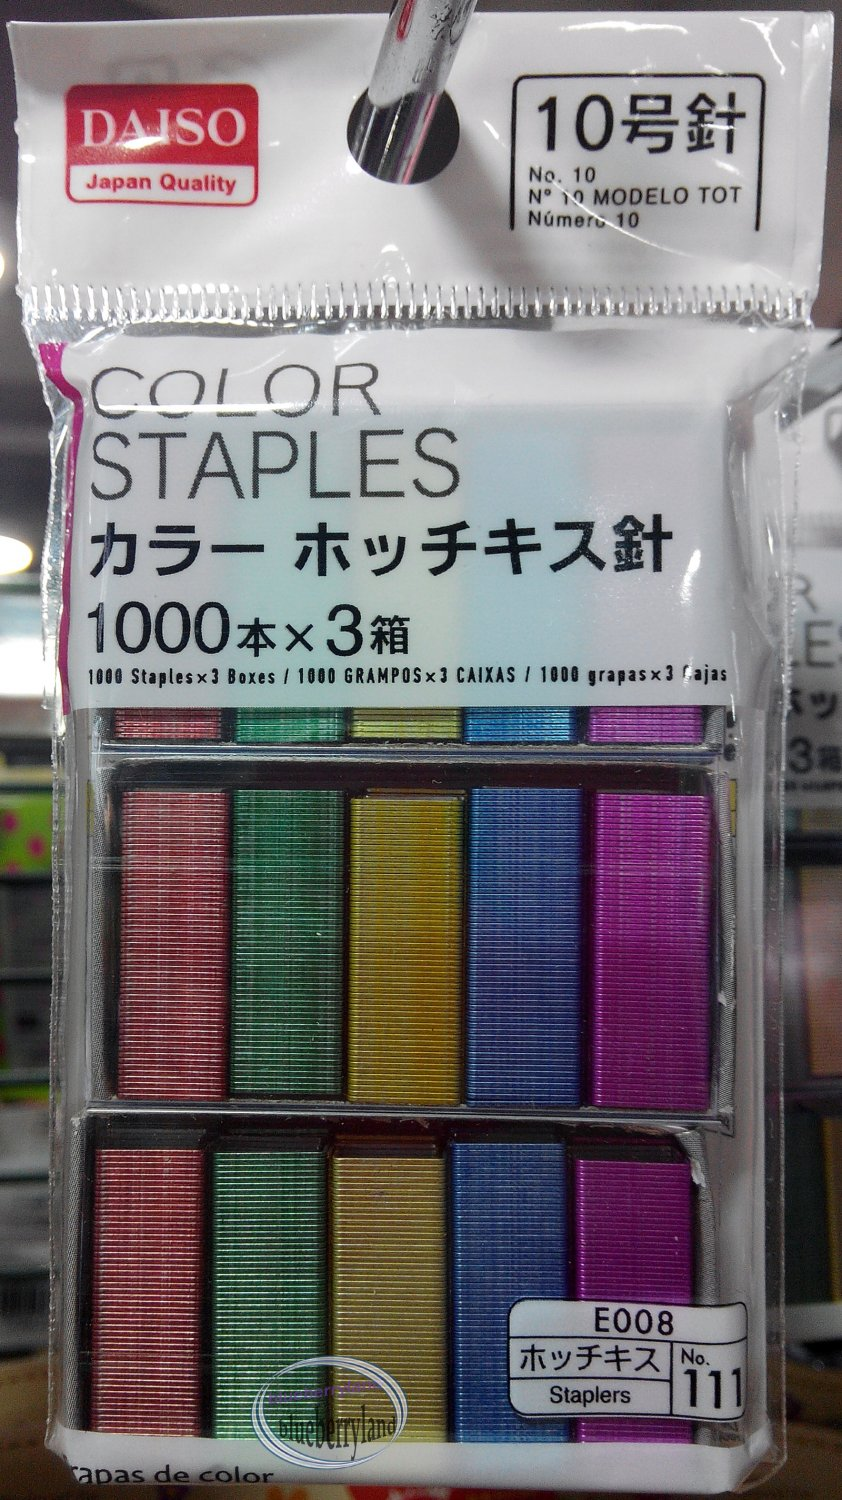 Japan Quality Size No.10 Color Staples 1000 staples x 3 boxes colorful stapler staplers